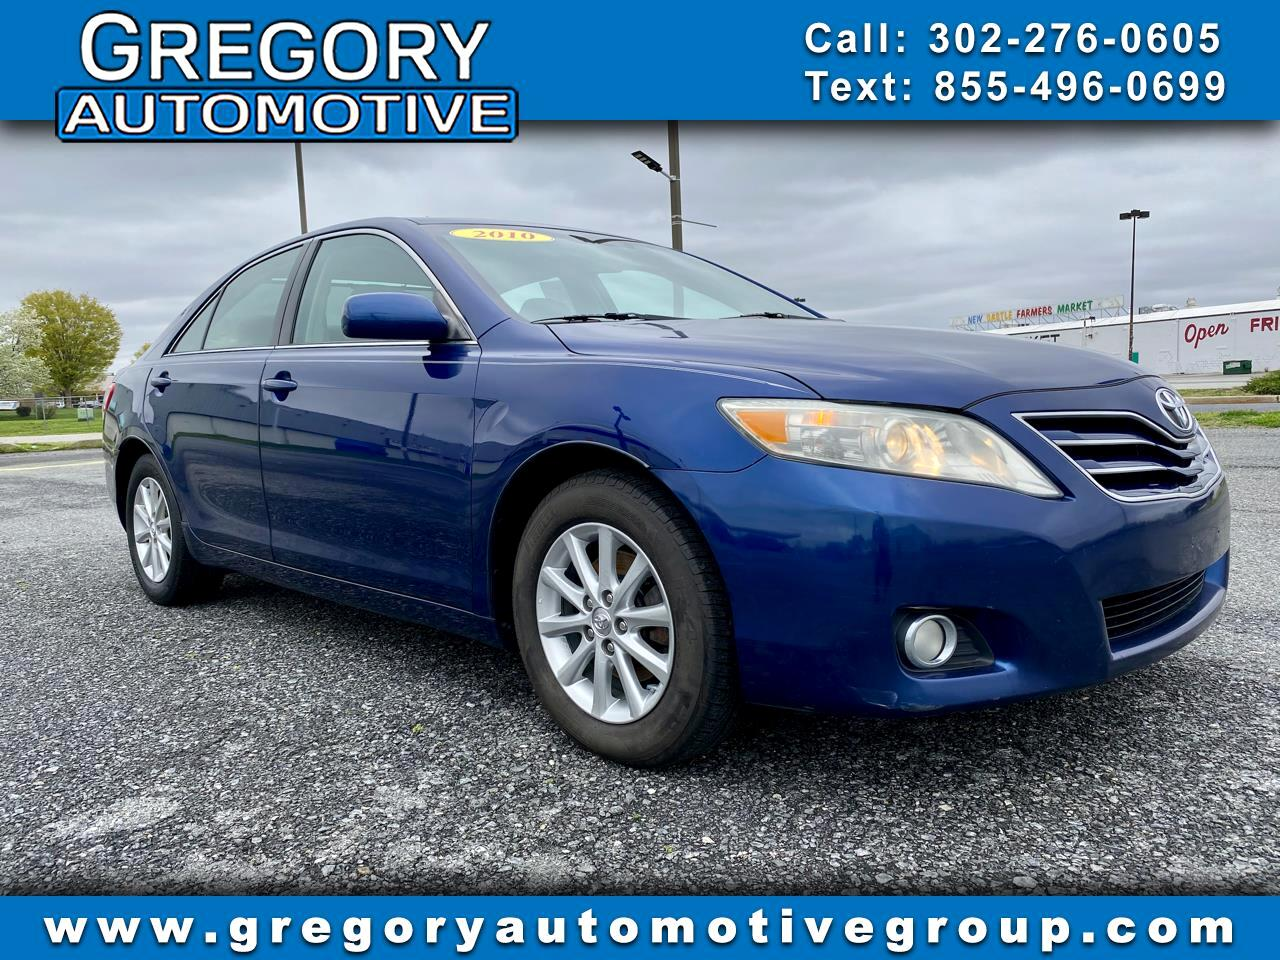 Toyota Camry 4dr Sdn I4 Auto XLE (Natl) 2010